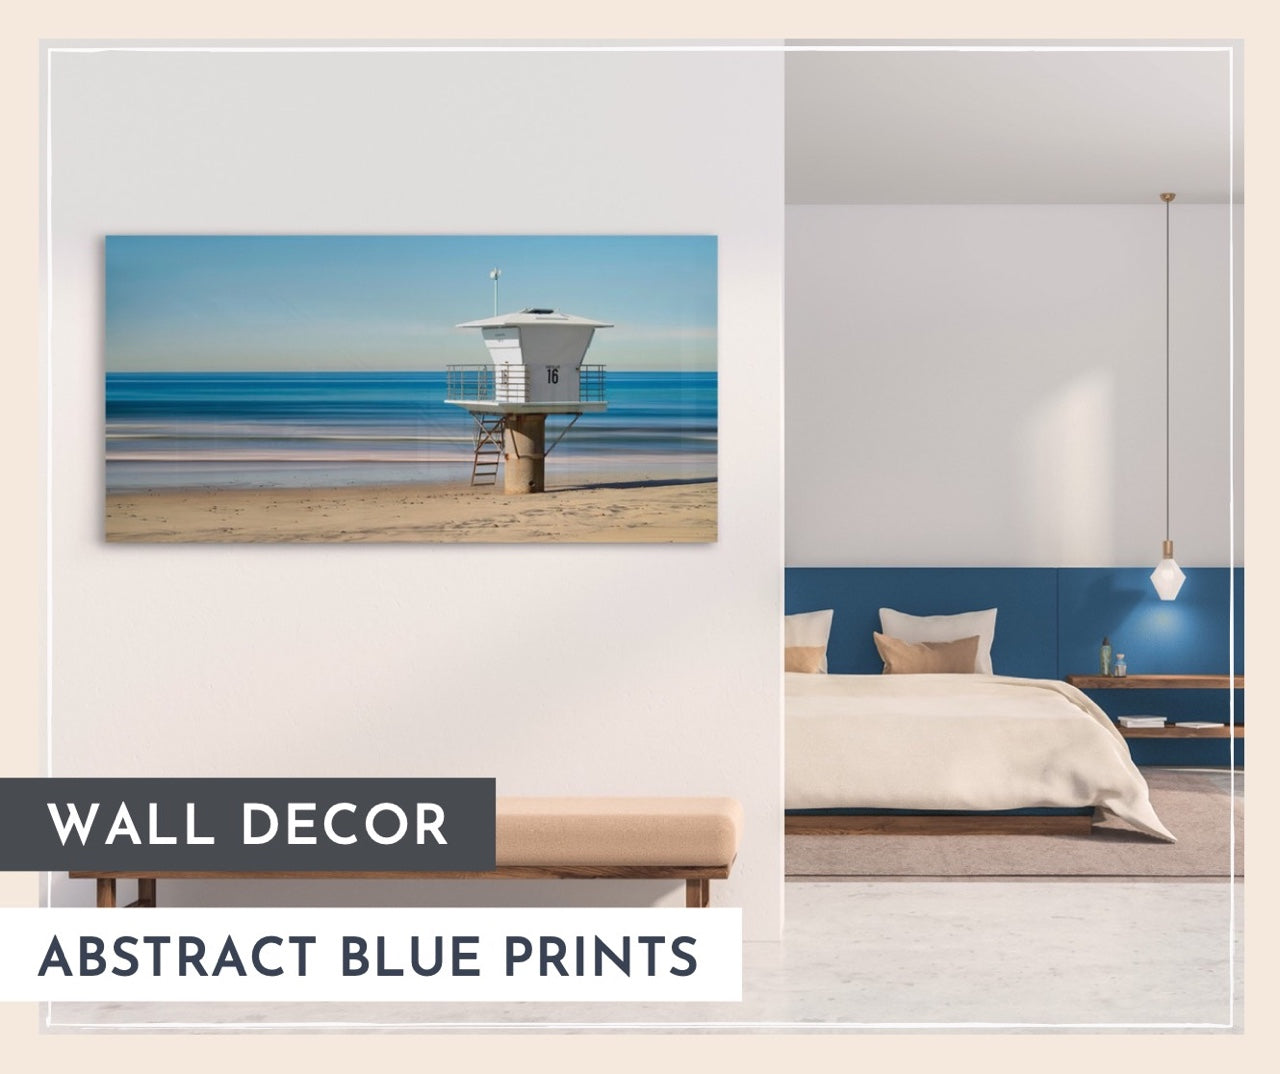 Wall Decor: Abstract Blues